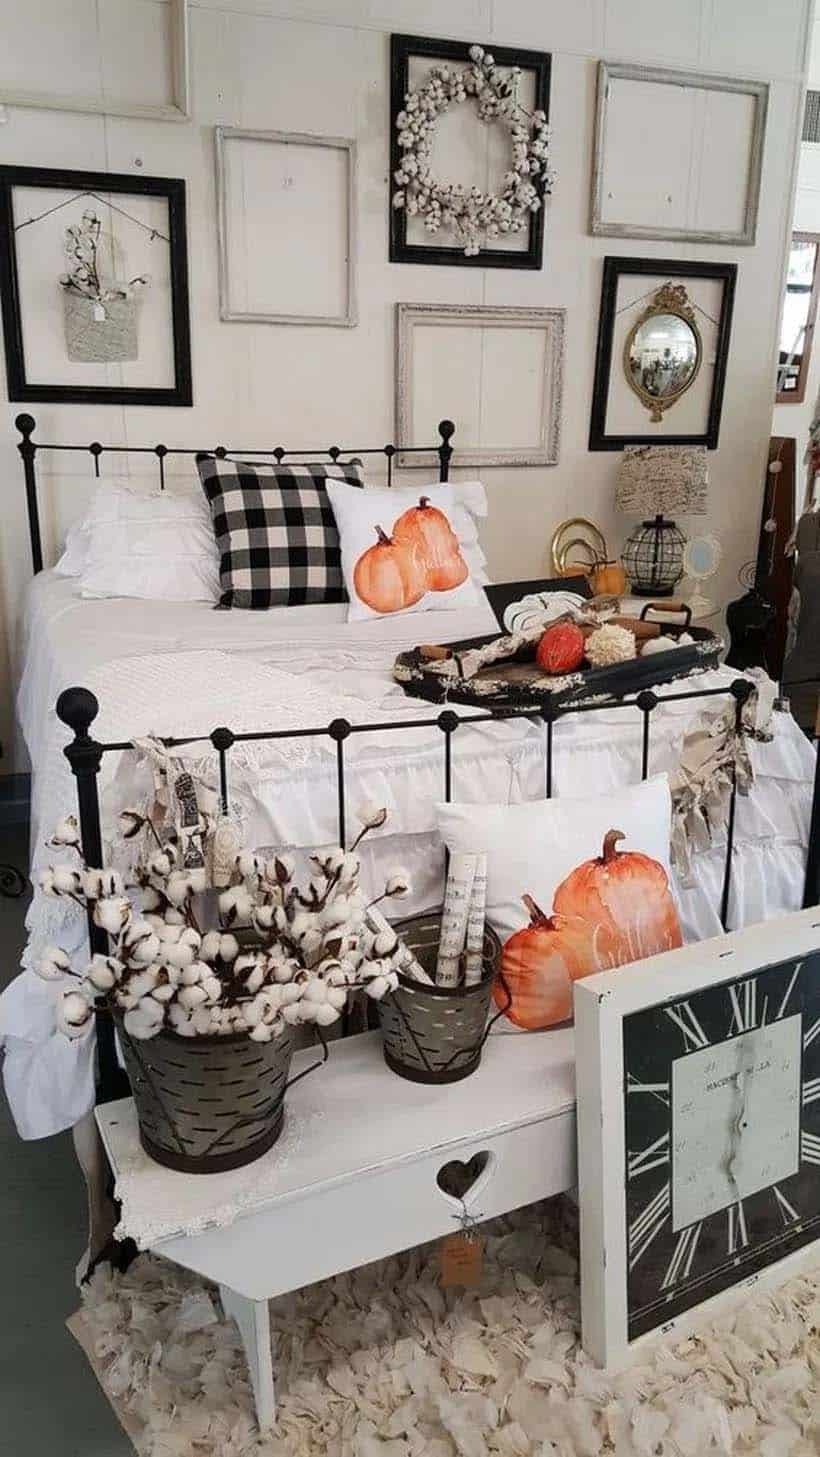 Bedroom-Decorating-Ideas-For-Autumn-08-1-Kindesign